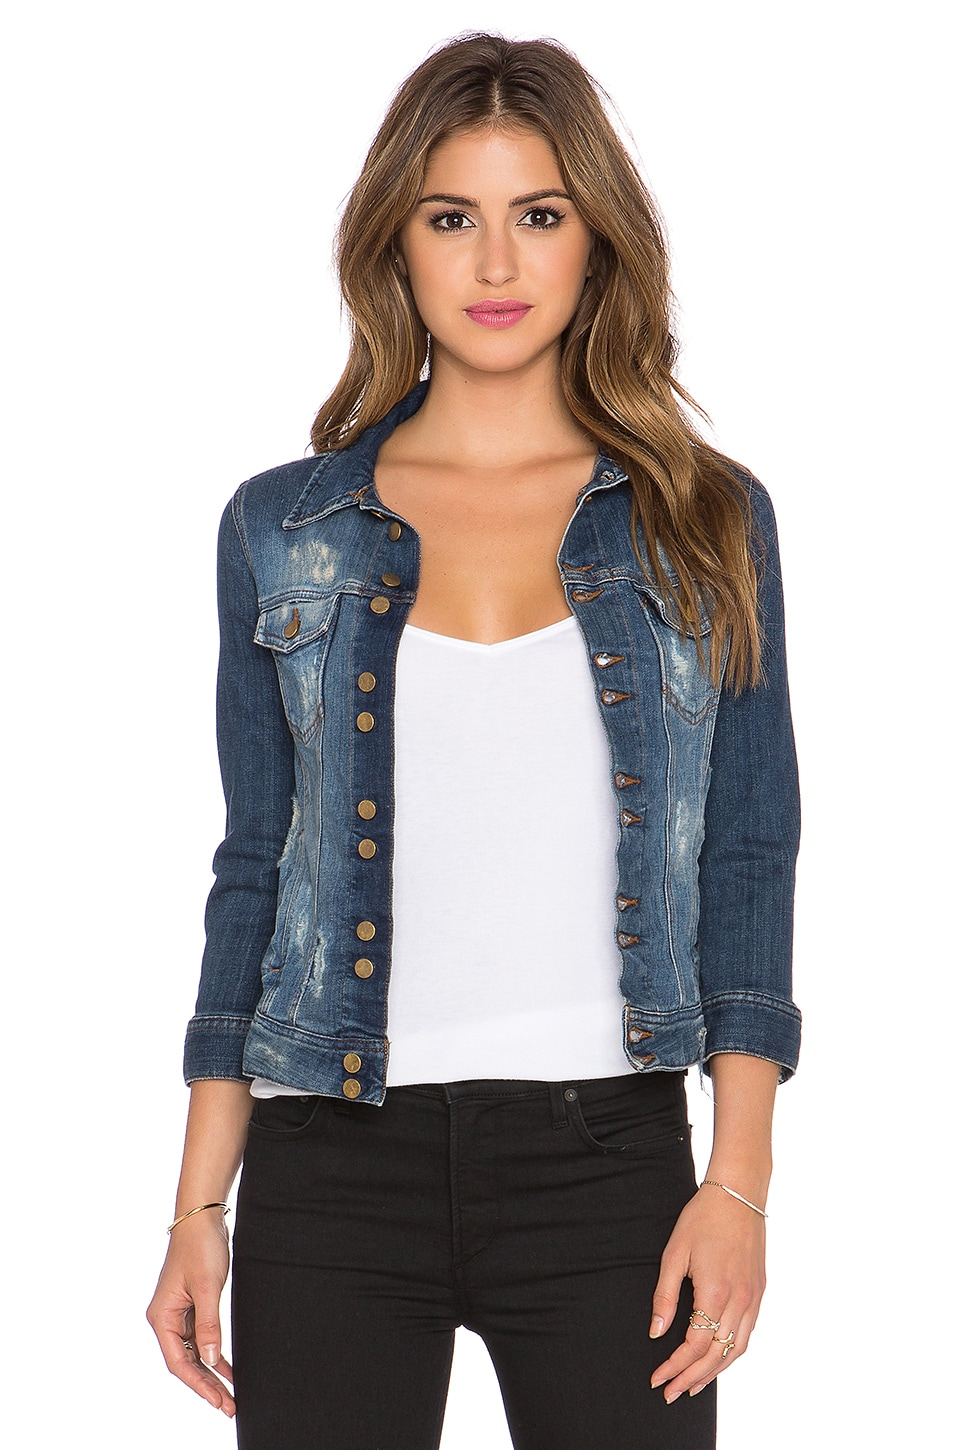 Acquaverde Denim Jacket in Ragged